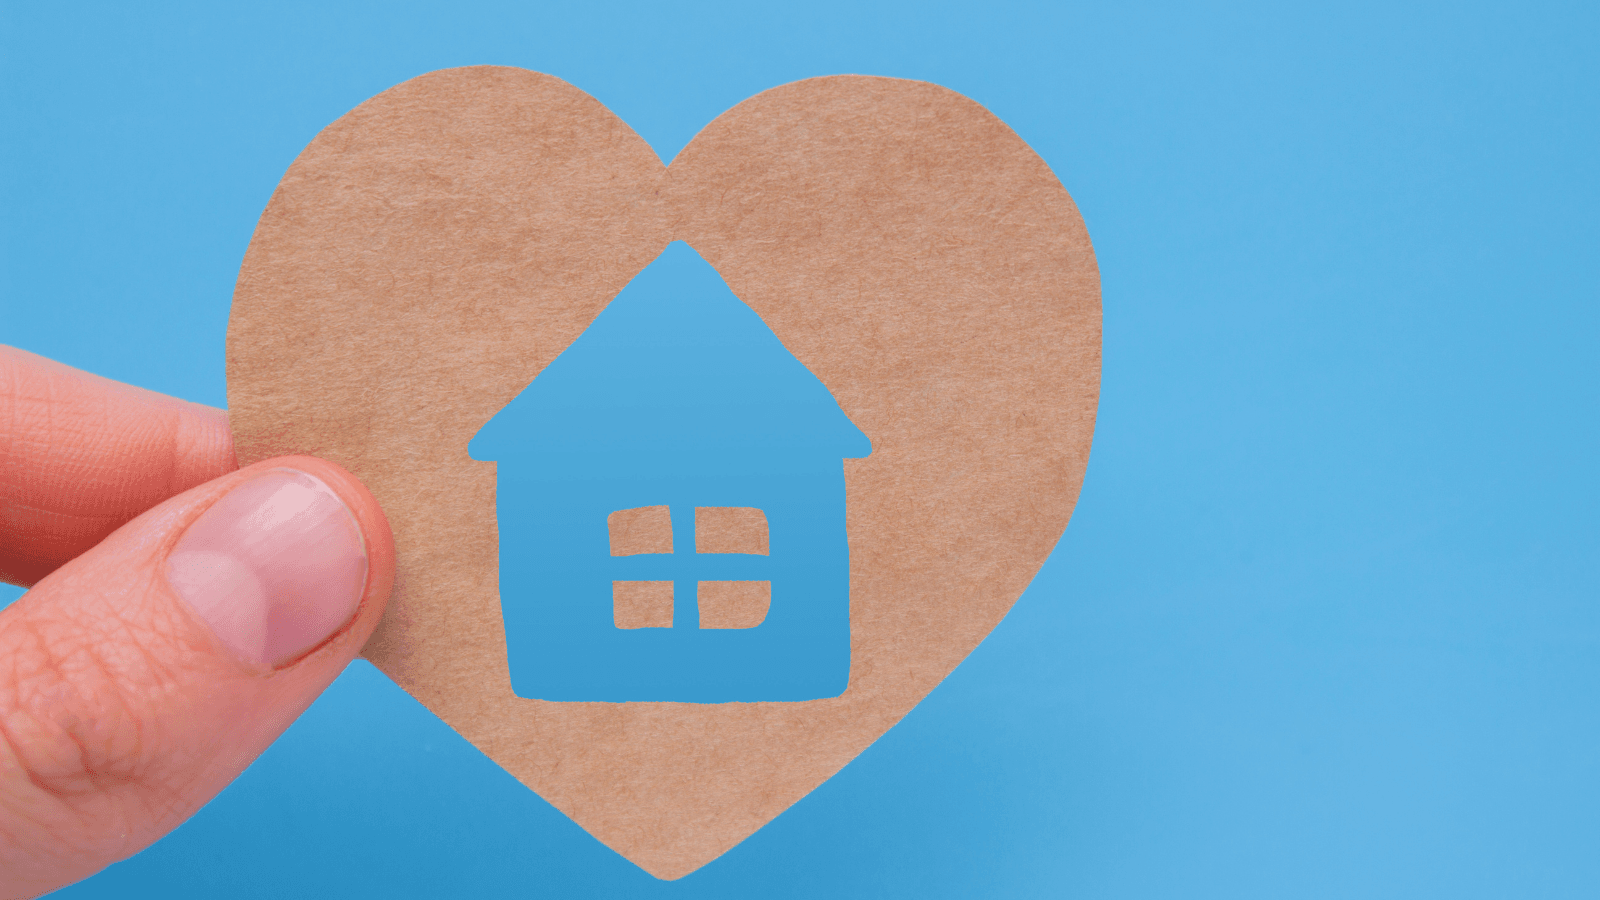 A heart with a house shape cutout being held by a hand against a blue background.